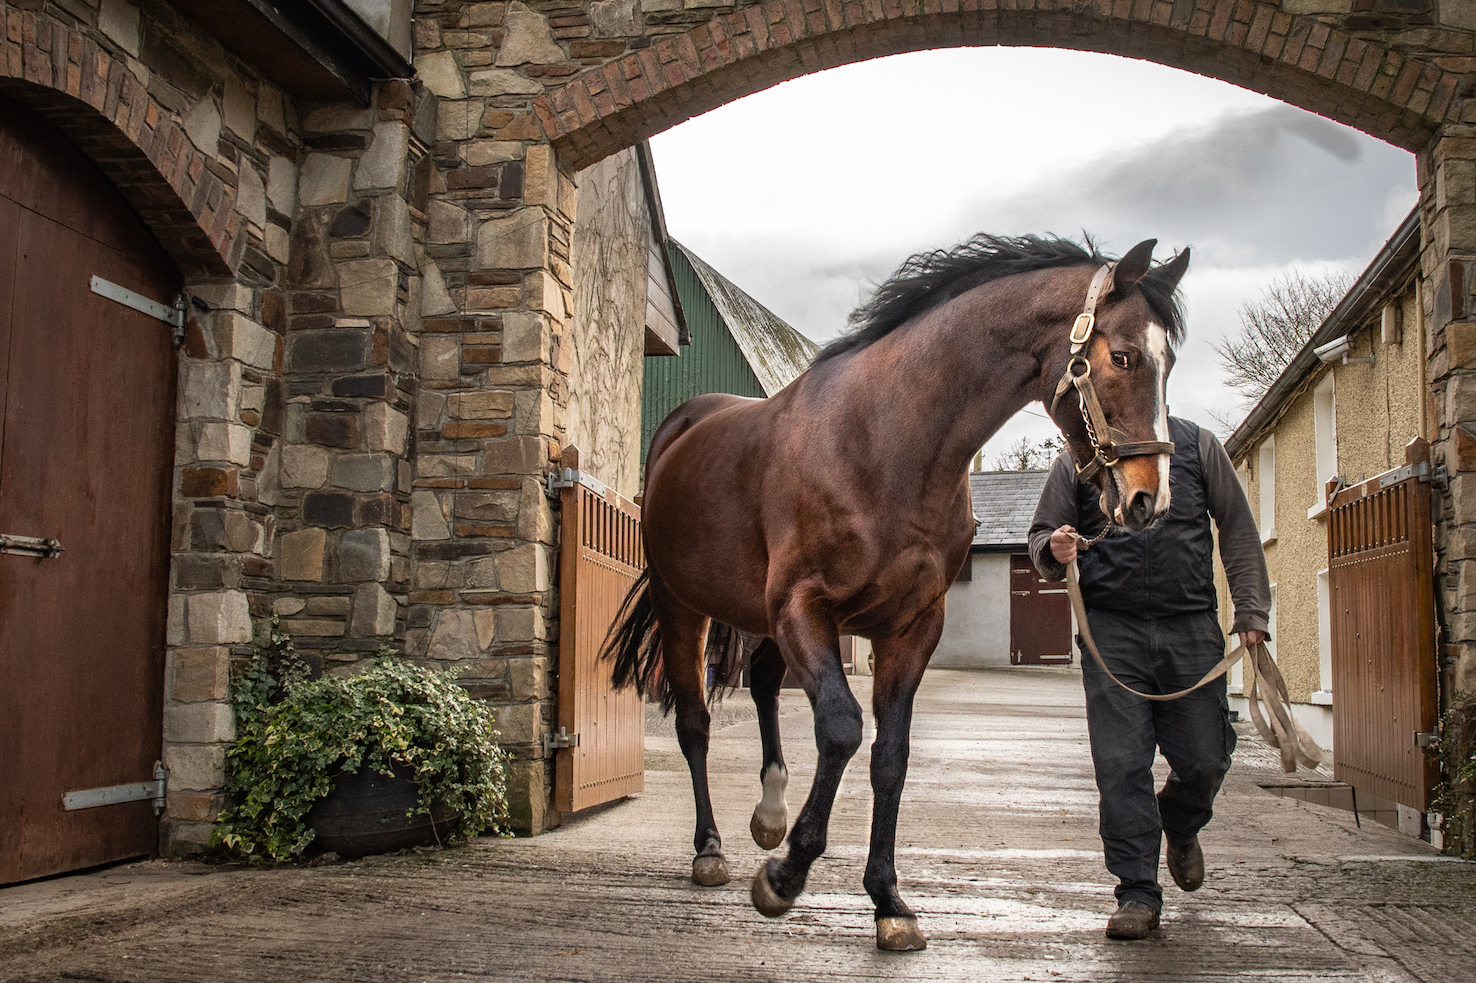 2010 Epsom Derby and Prix de l'Arc de Triomphe winner Workforce stepping out at Knockhouse Stud in County Kilkenny during last January's Stallion Trail. Photo: ITM